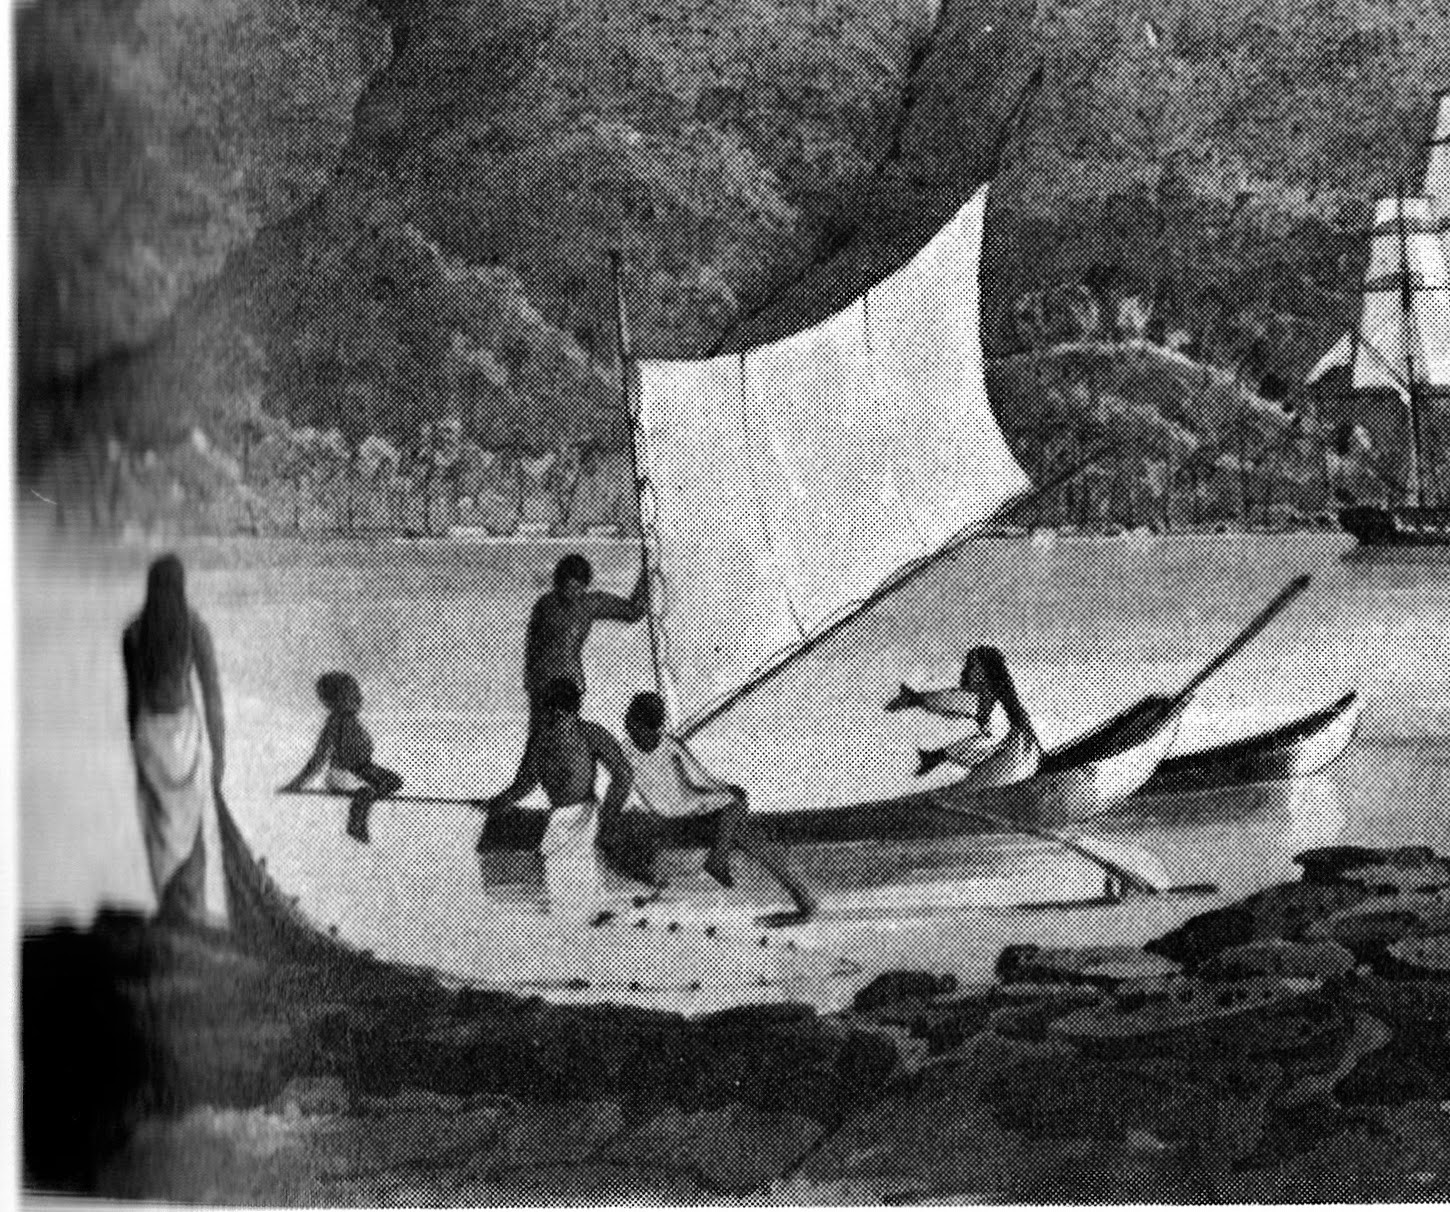 Tahitian dugout canoe by Capt. Henry Byam Martin, RN